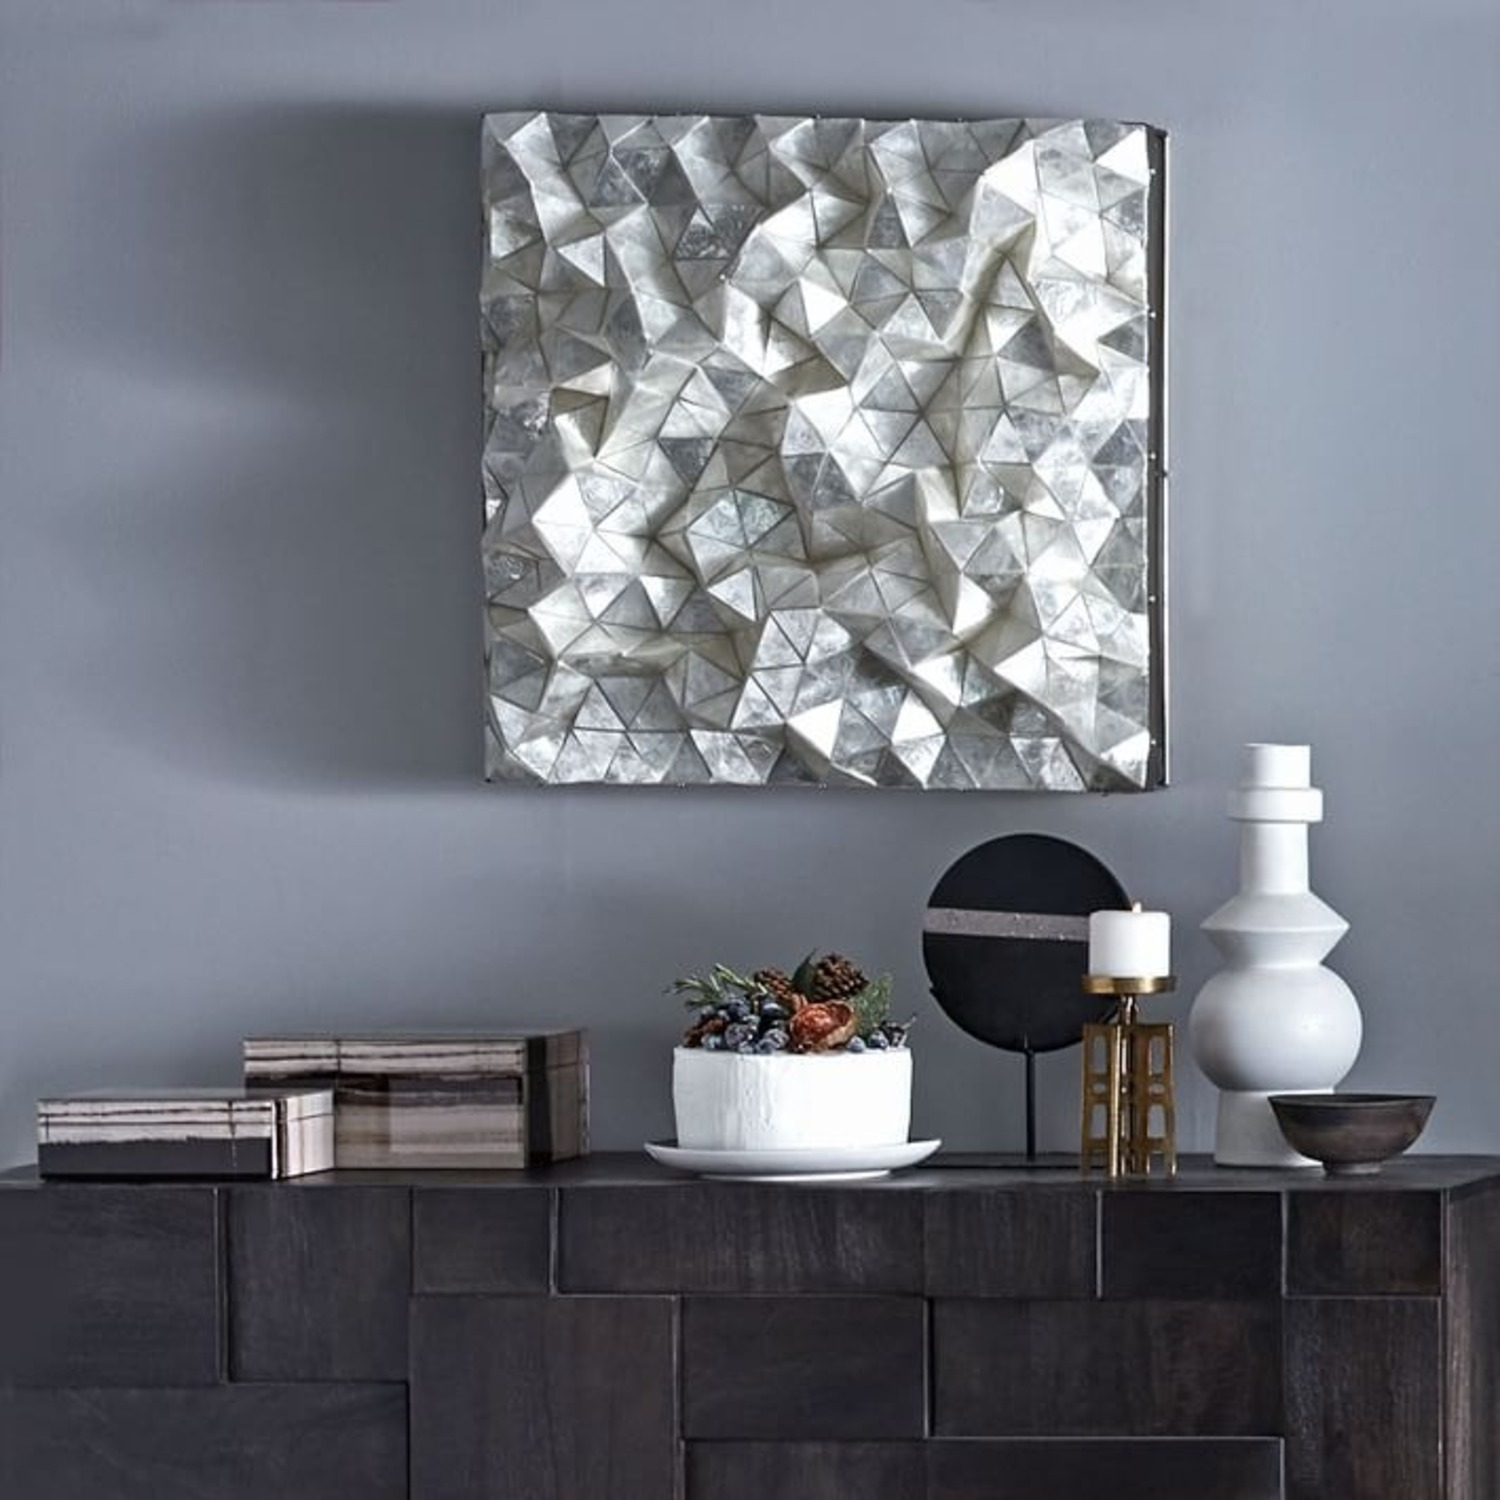 West Elm Capiz Wall Art Faceted Square - image-1